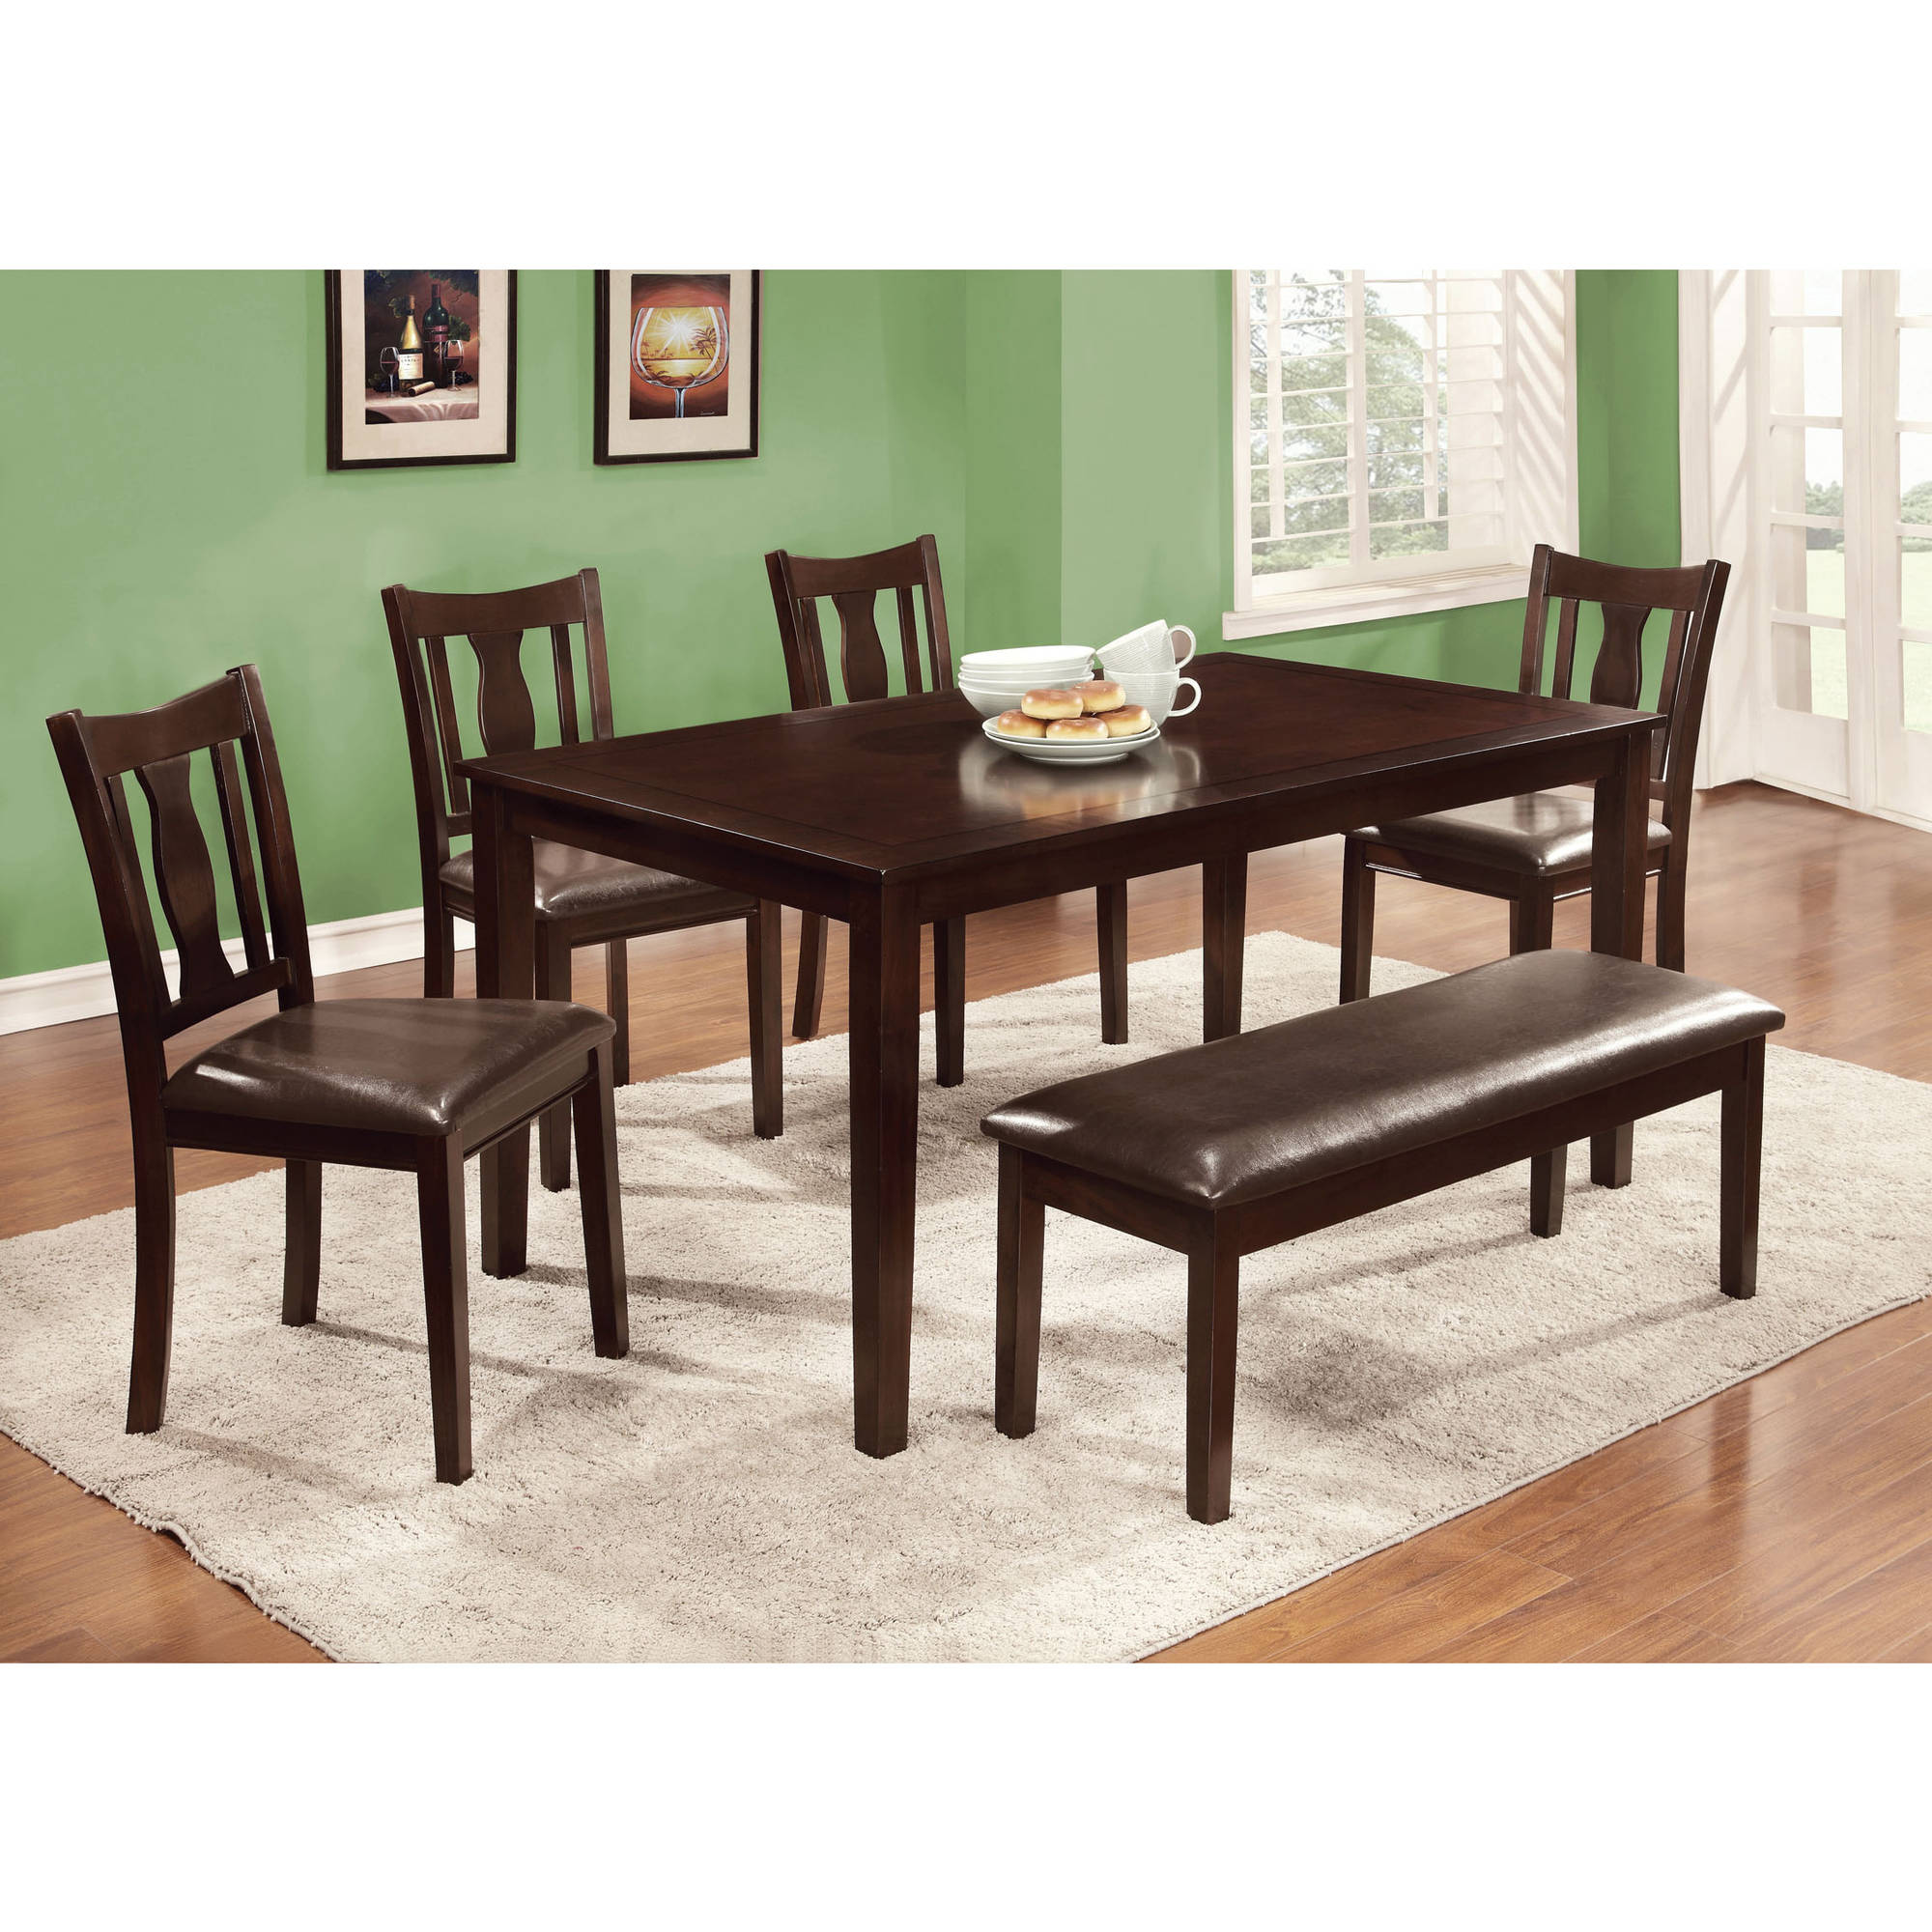 Furniture of America Kingsley Contemporary 6-Piece Dining Room Set, Espresso by Furniture of America